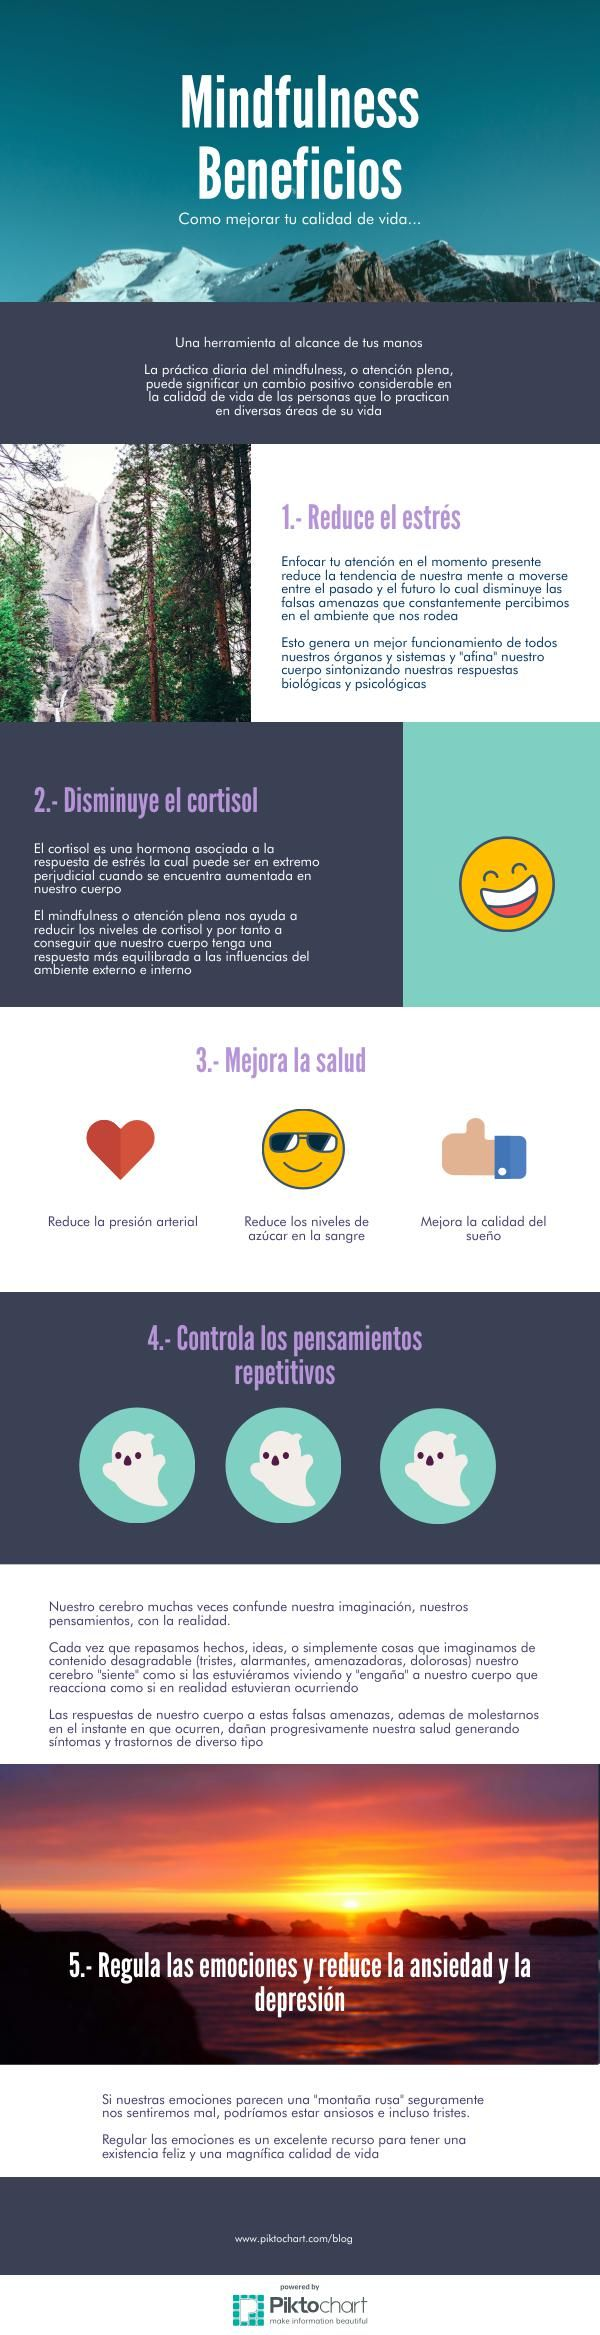 SERBAL Beneficios del mindfulness | @Piktochart Infographic